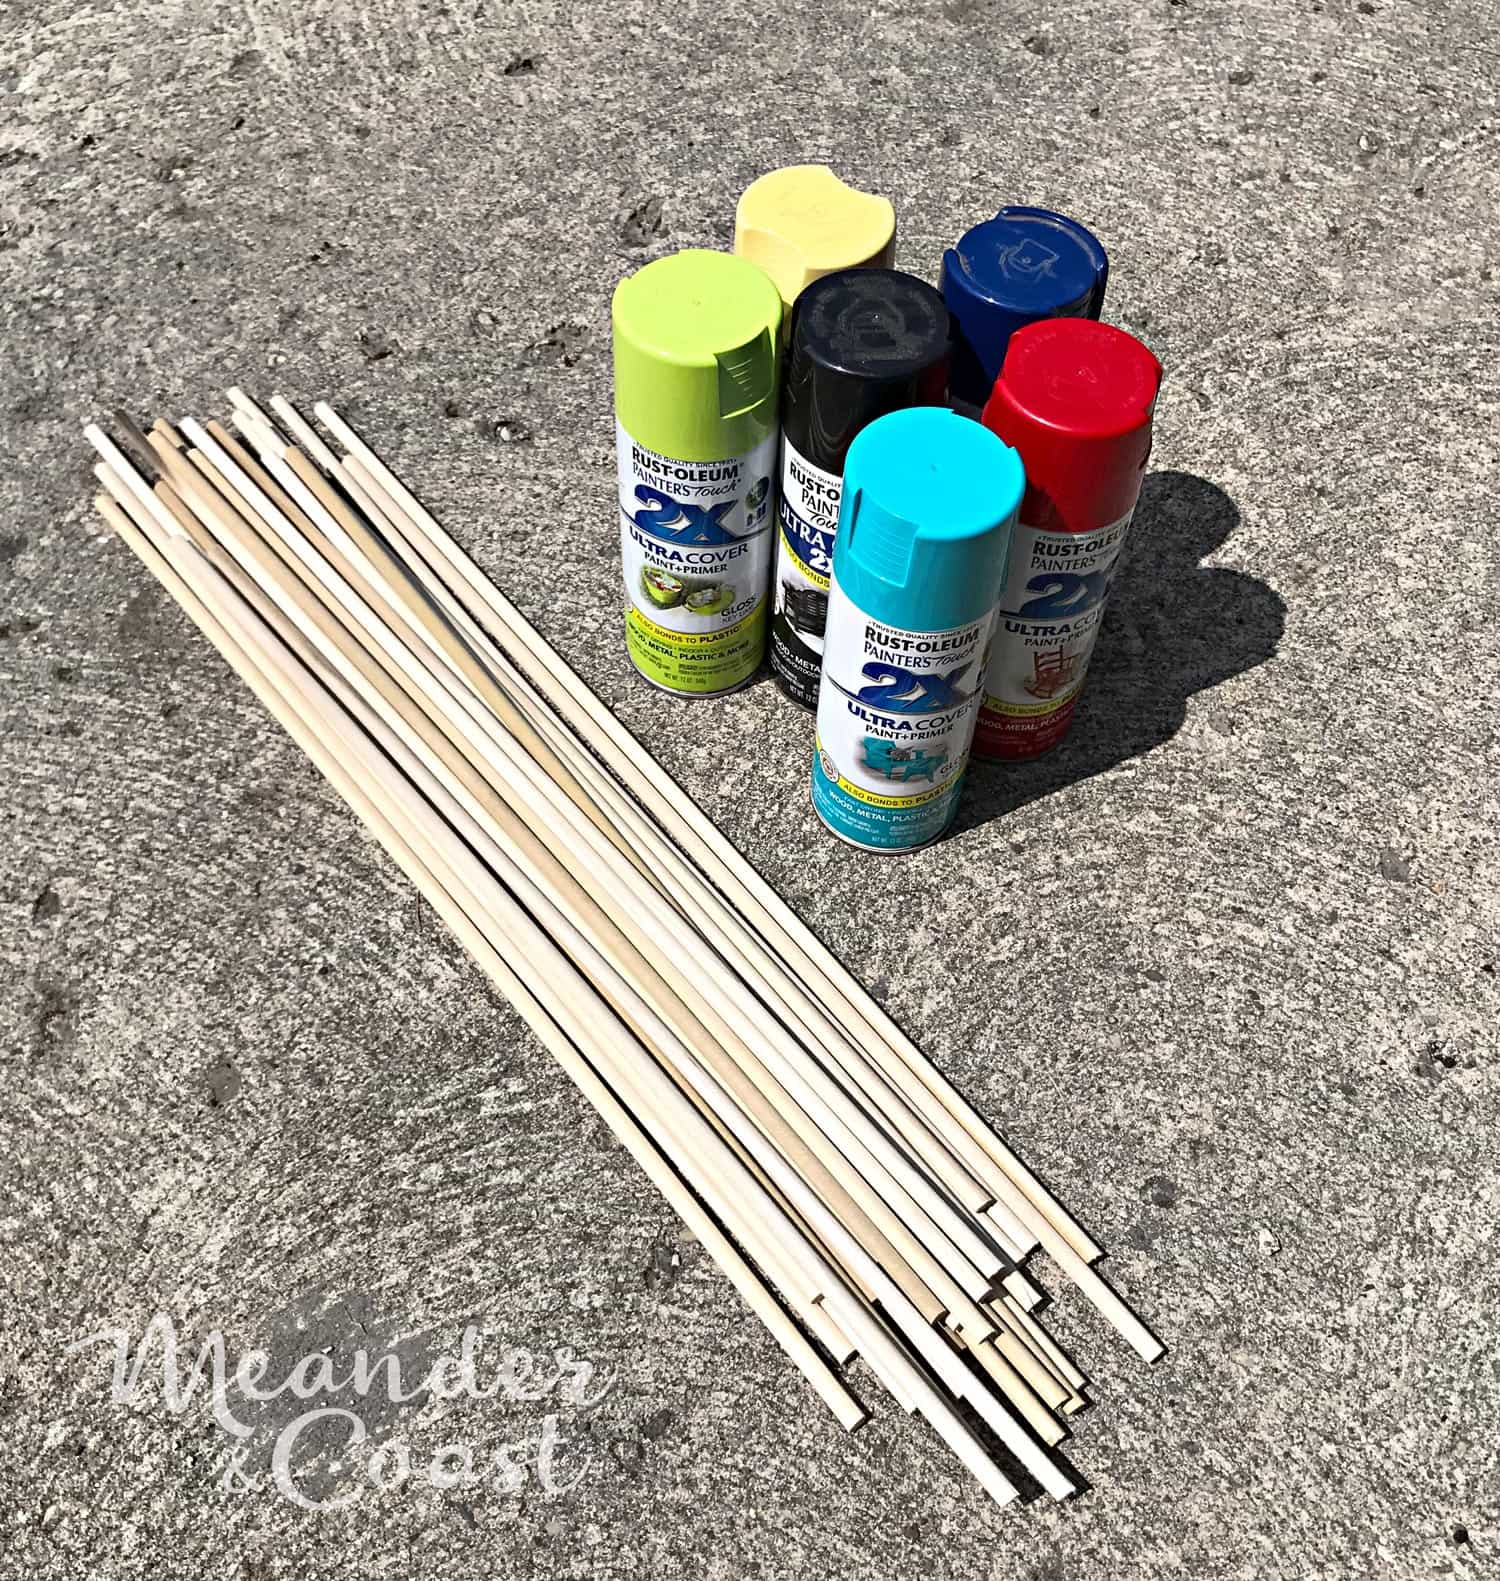 Supplies to make pick up sticks giant outdoor game. Perfect for parties or camping. Quick and easy craft. | Meander & Coast #giantgame #pickupsticks #oversizedgame #giantyardgames #bigyardgame #campinggames